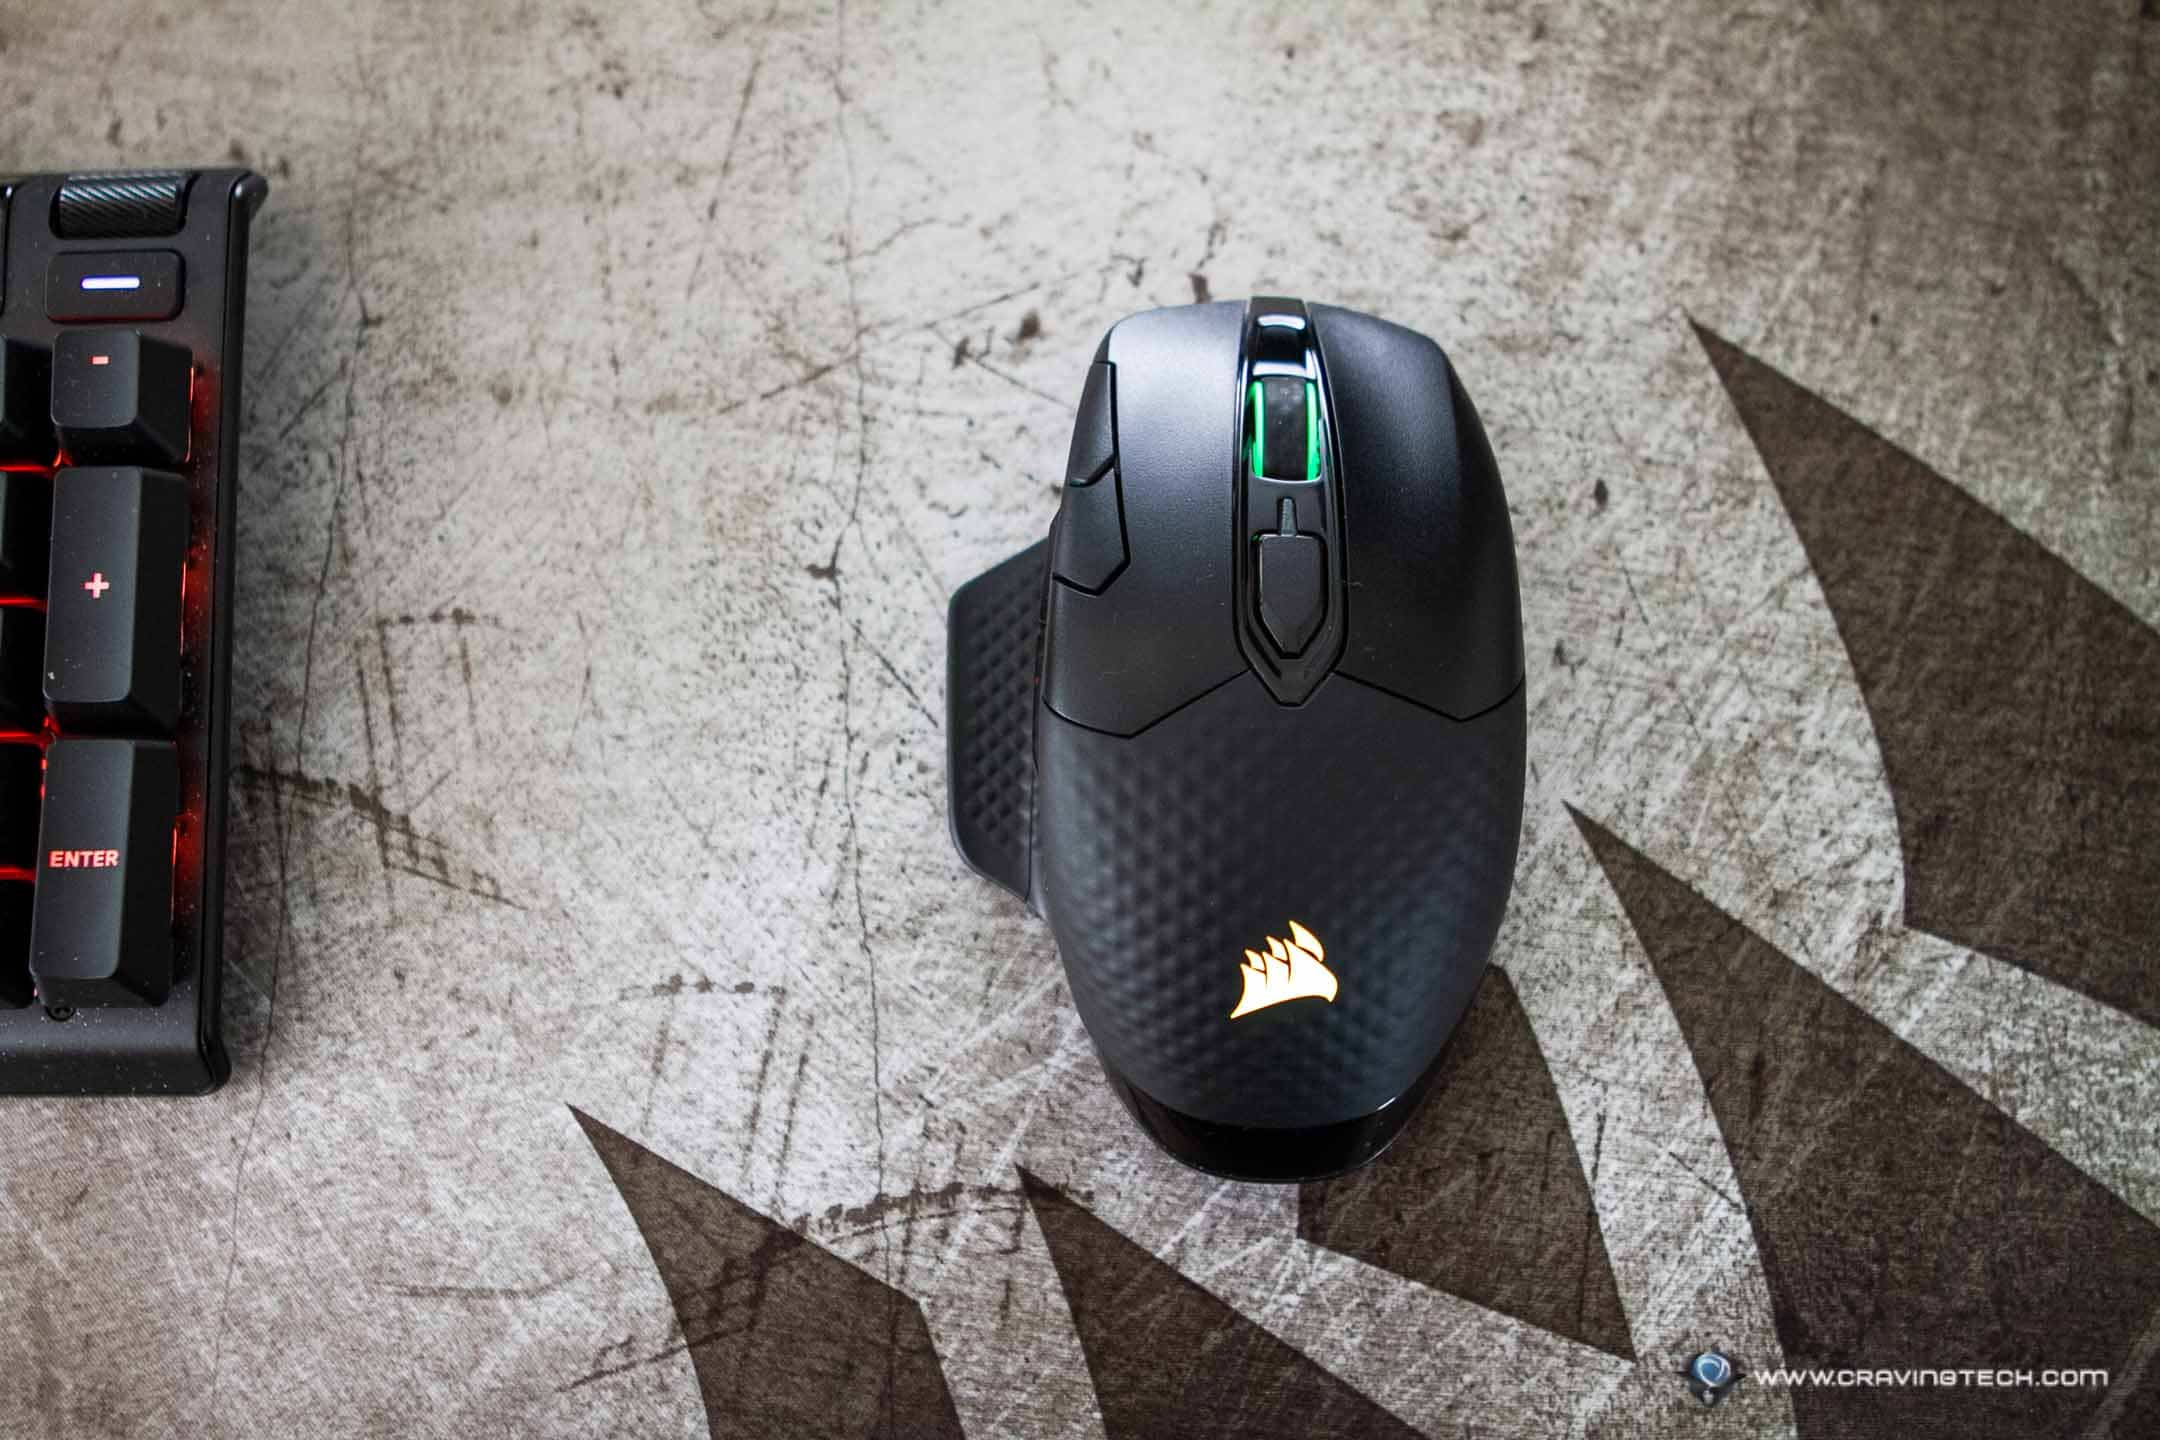 Wireless mouse with 2,000Hz polling rate – CORSAIR DARK CORE RGB PRO Review